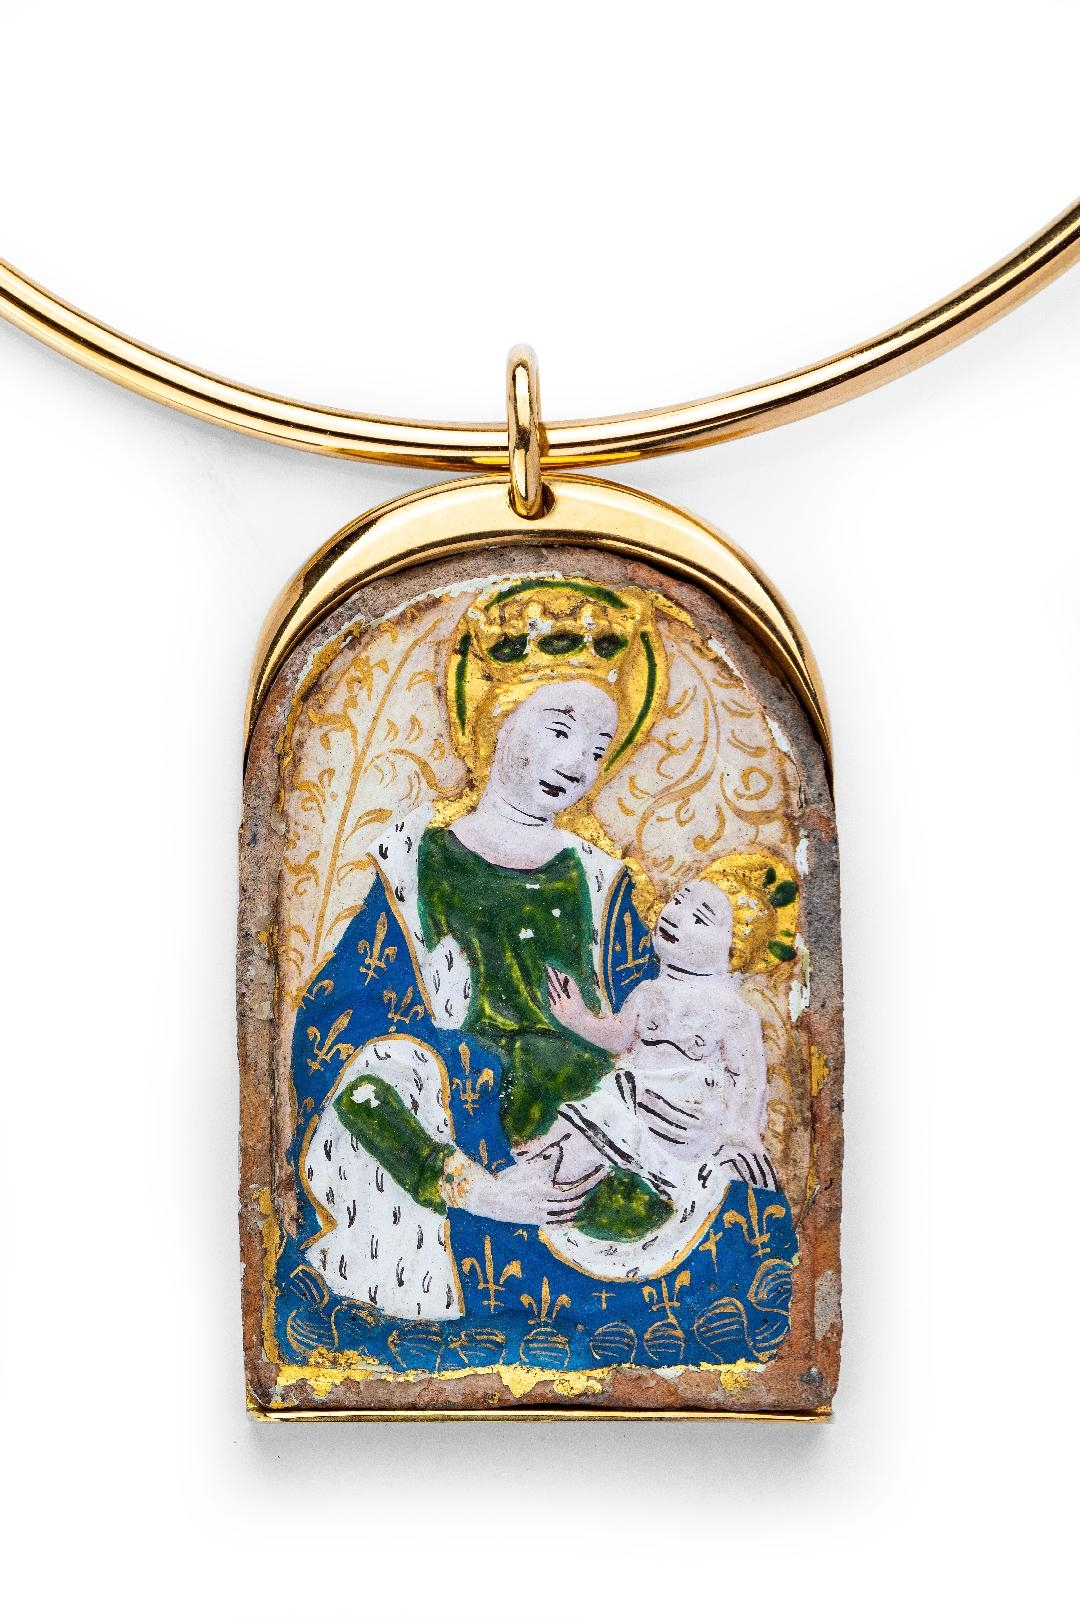 UNIQUE PENDANT WITH A MEDIEVAL MINIATURE